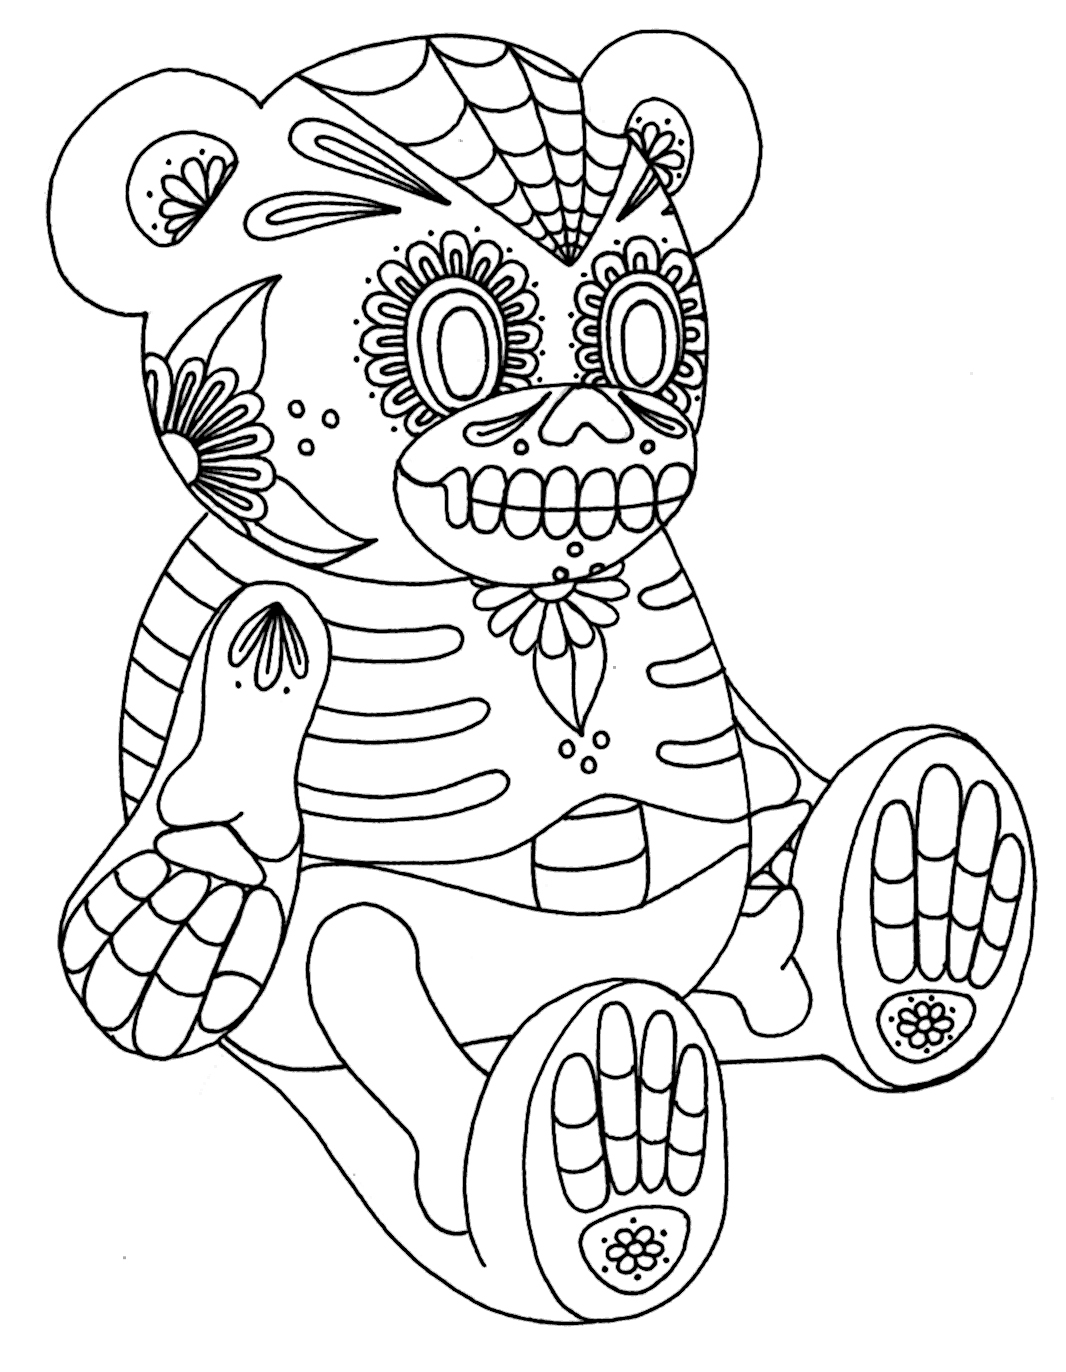 halloween teddy bear coloring pages | Yucca Flats, N.M.: Wenchkin's Coloring Pages - Sugar Skull ...